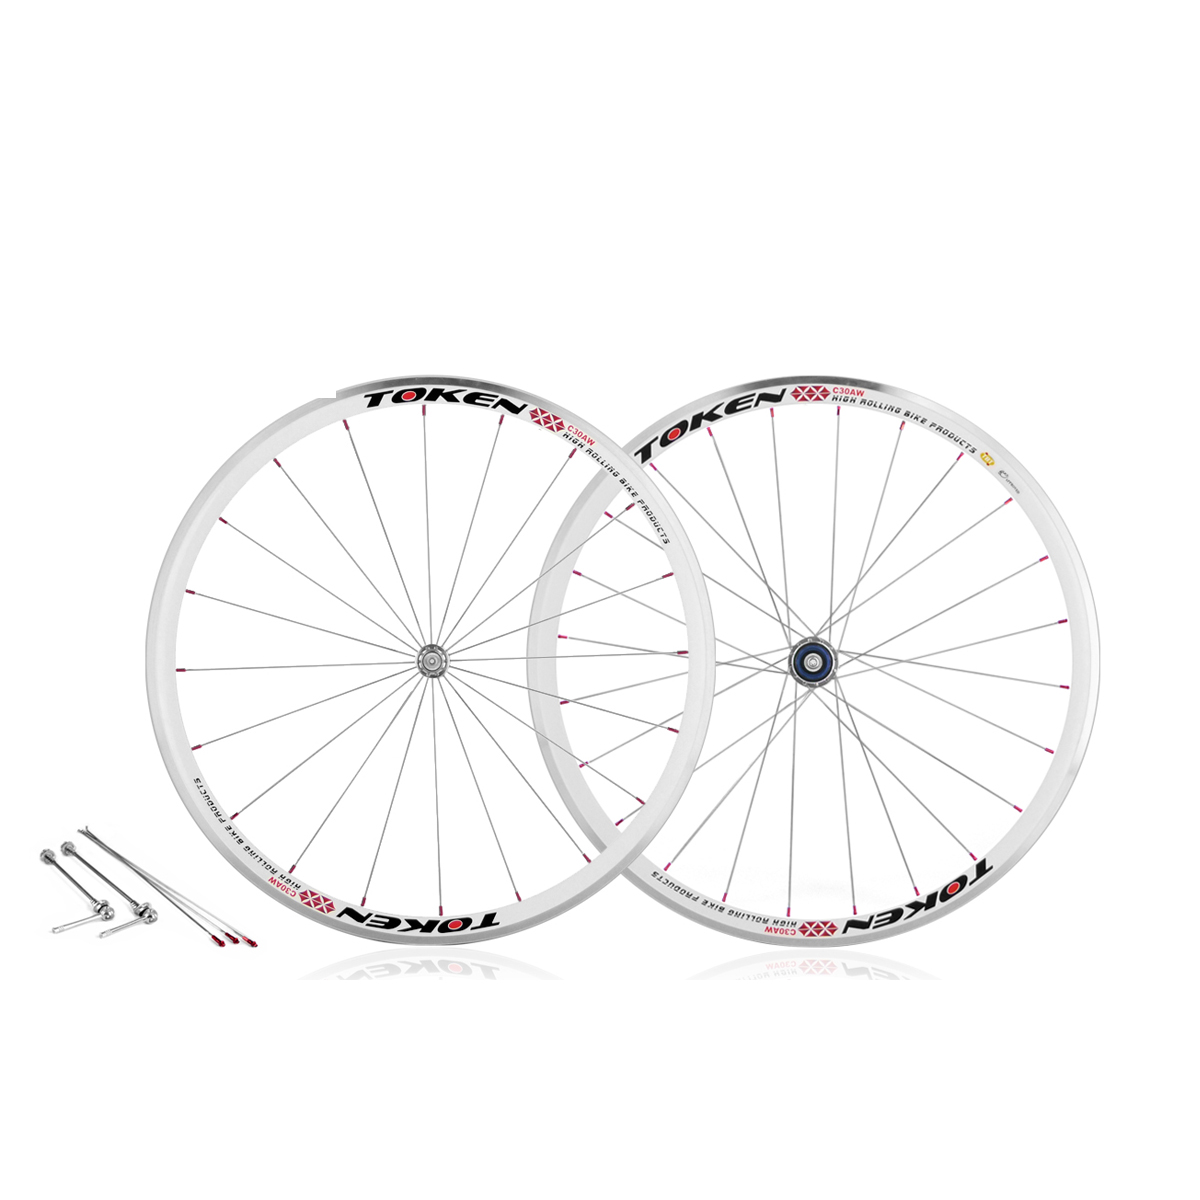 Roues Token route C30AW alu blanc Campagnolo (la paire)